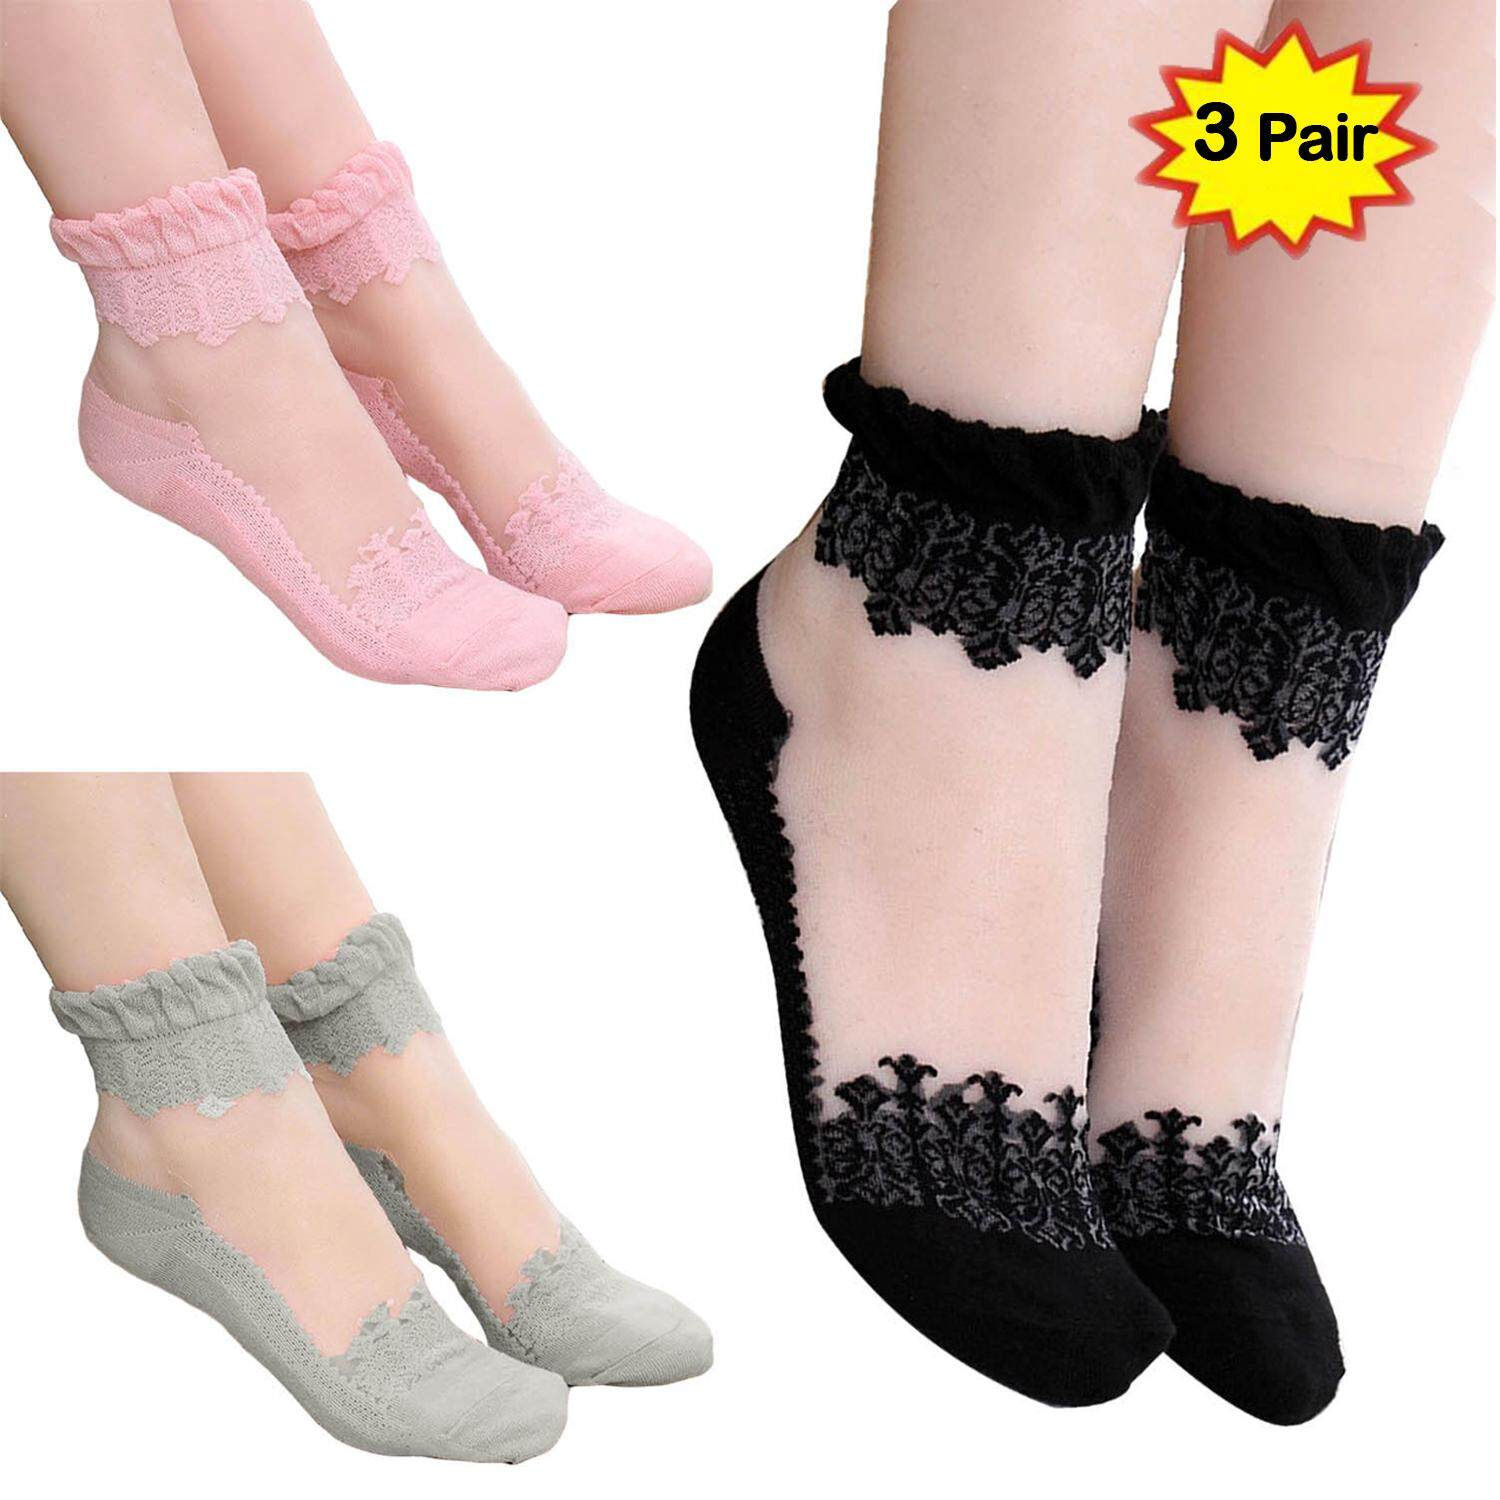 c51d109d7a7661 3 Pair Women Lady Girl Ultra-thin Elastic Transparent Lace Silk Short Socks  with Anti